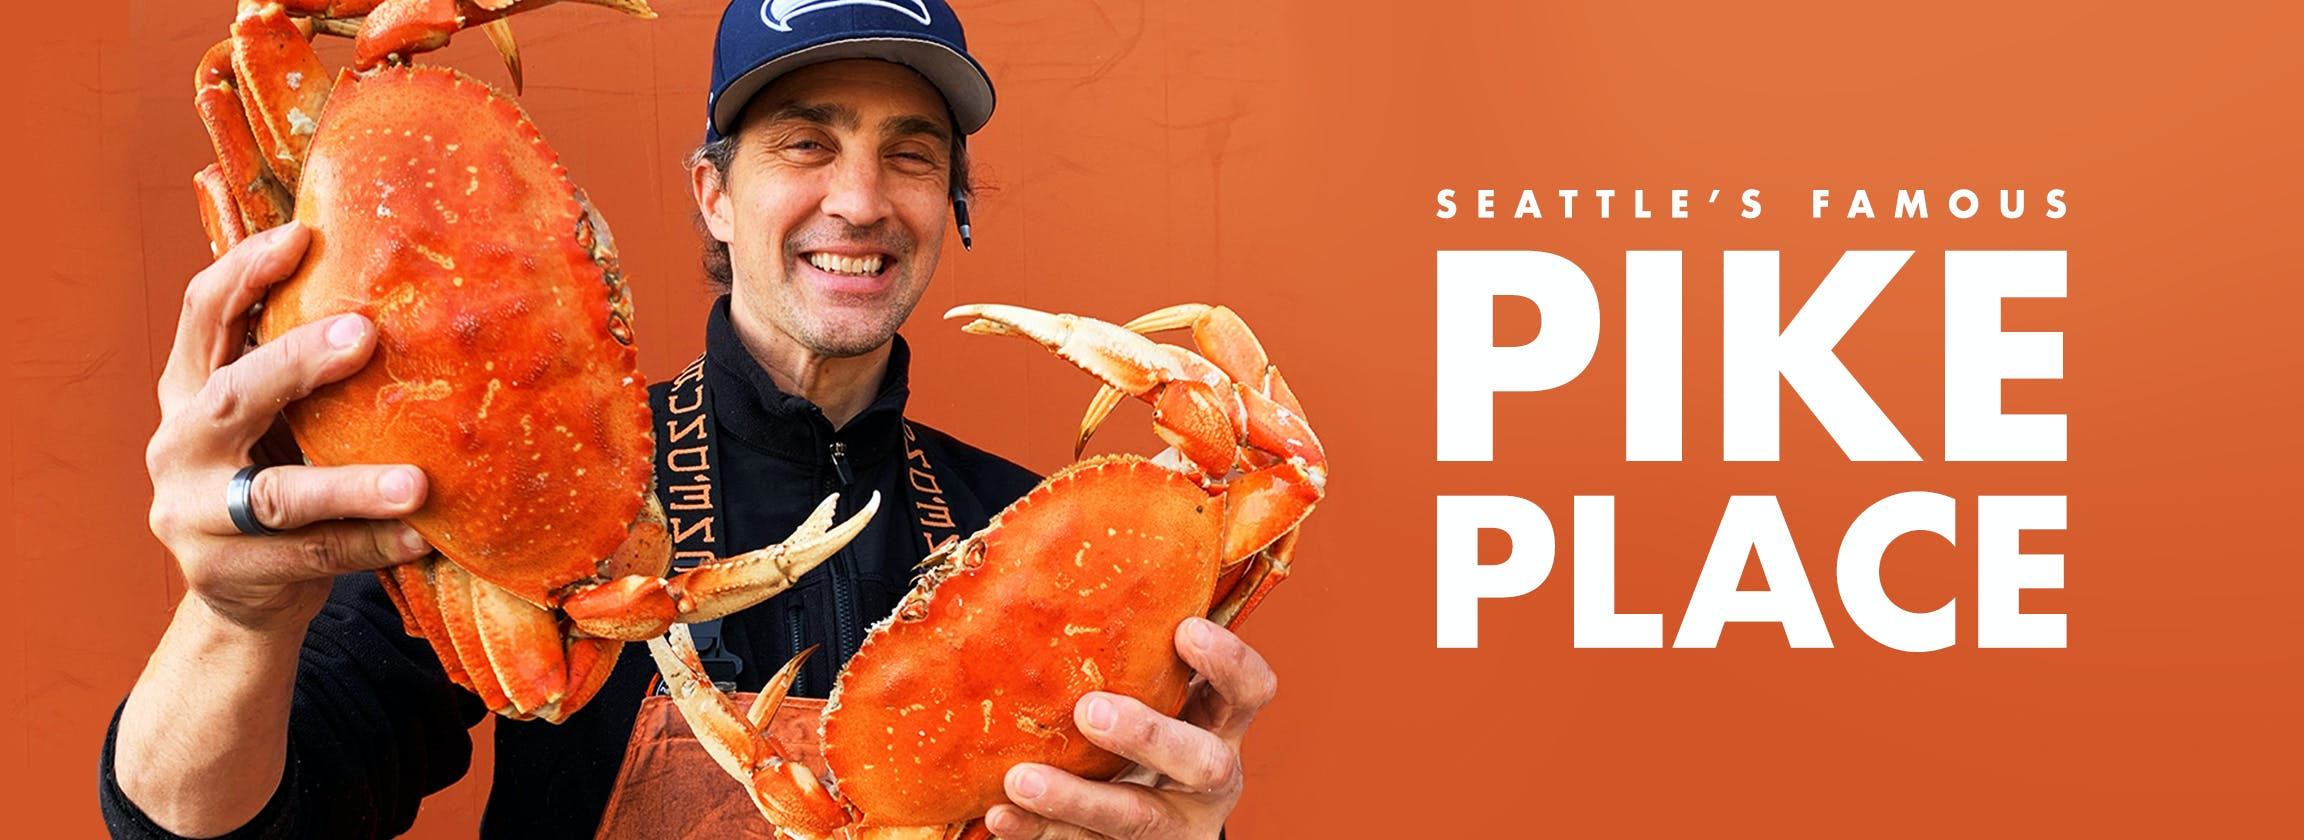 Pike Place Launch Homepage Banner